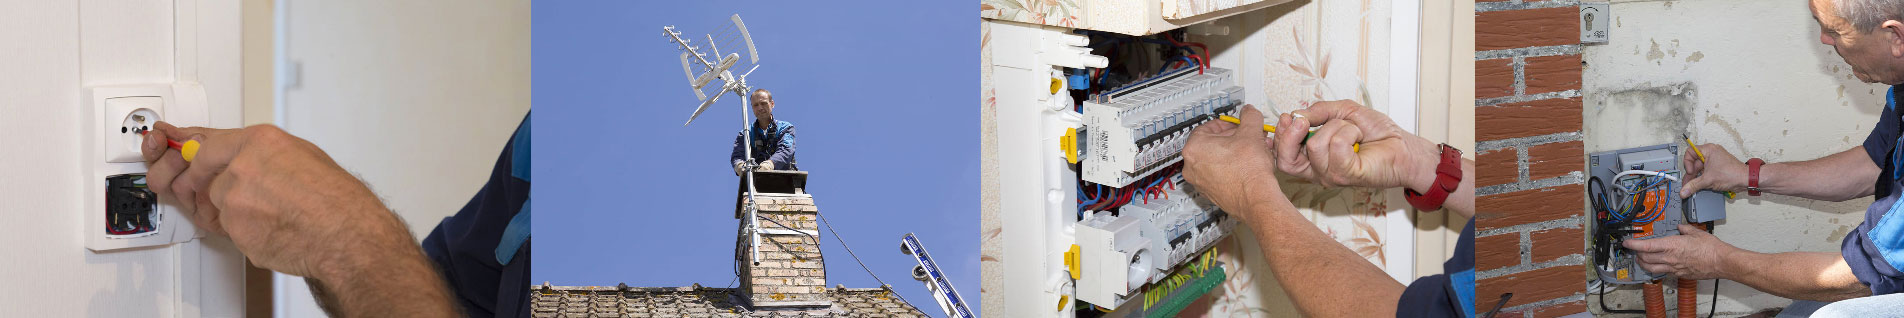 reparation-installation-electricite